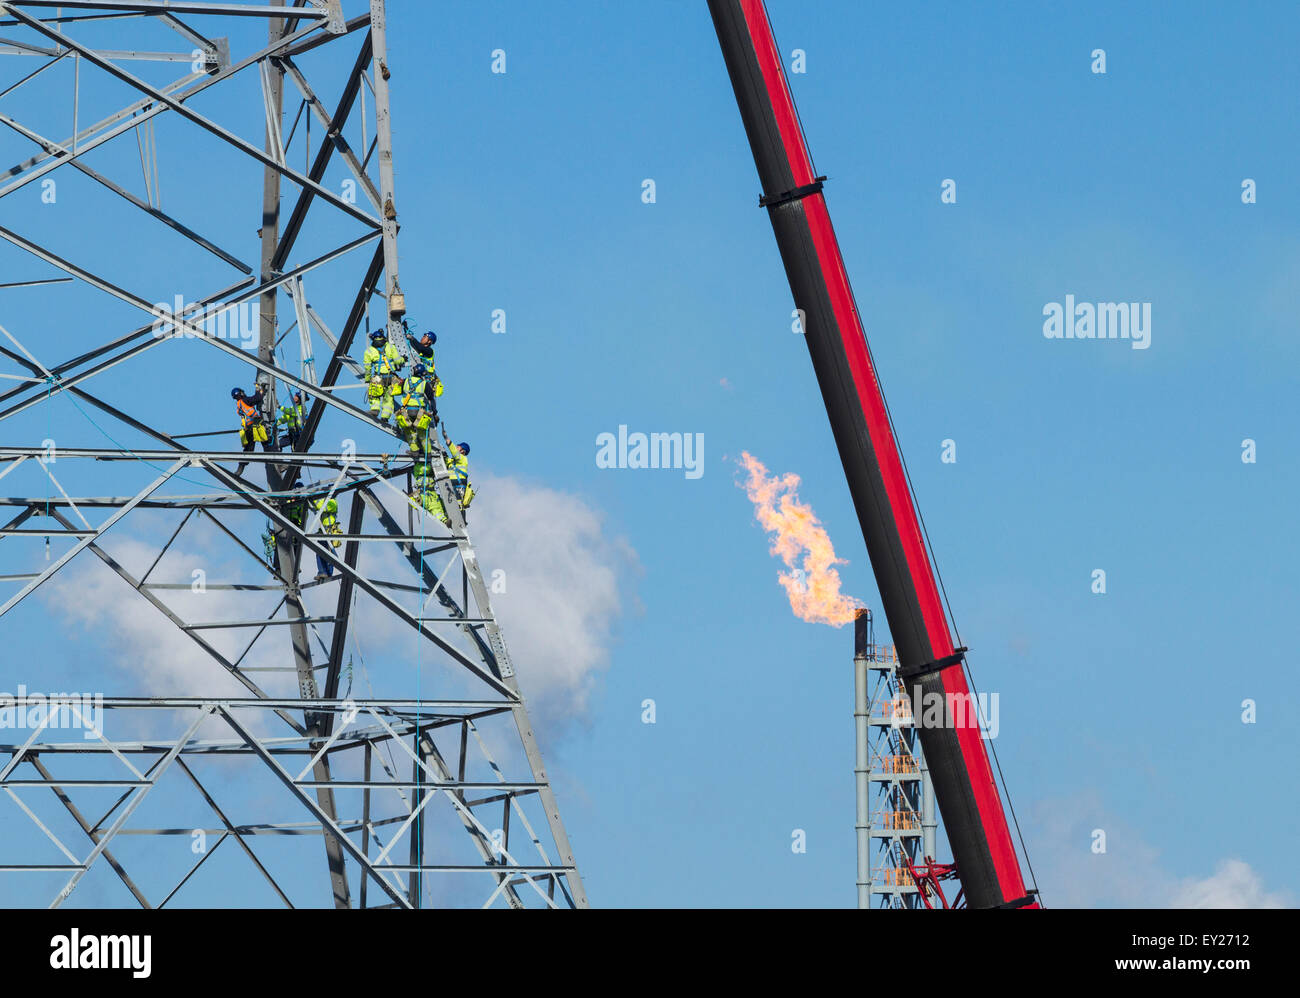 Workers erecting 145 metre tall electricity pylons across the river Tees near Middlesbrough, north east England, - Stock Image